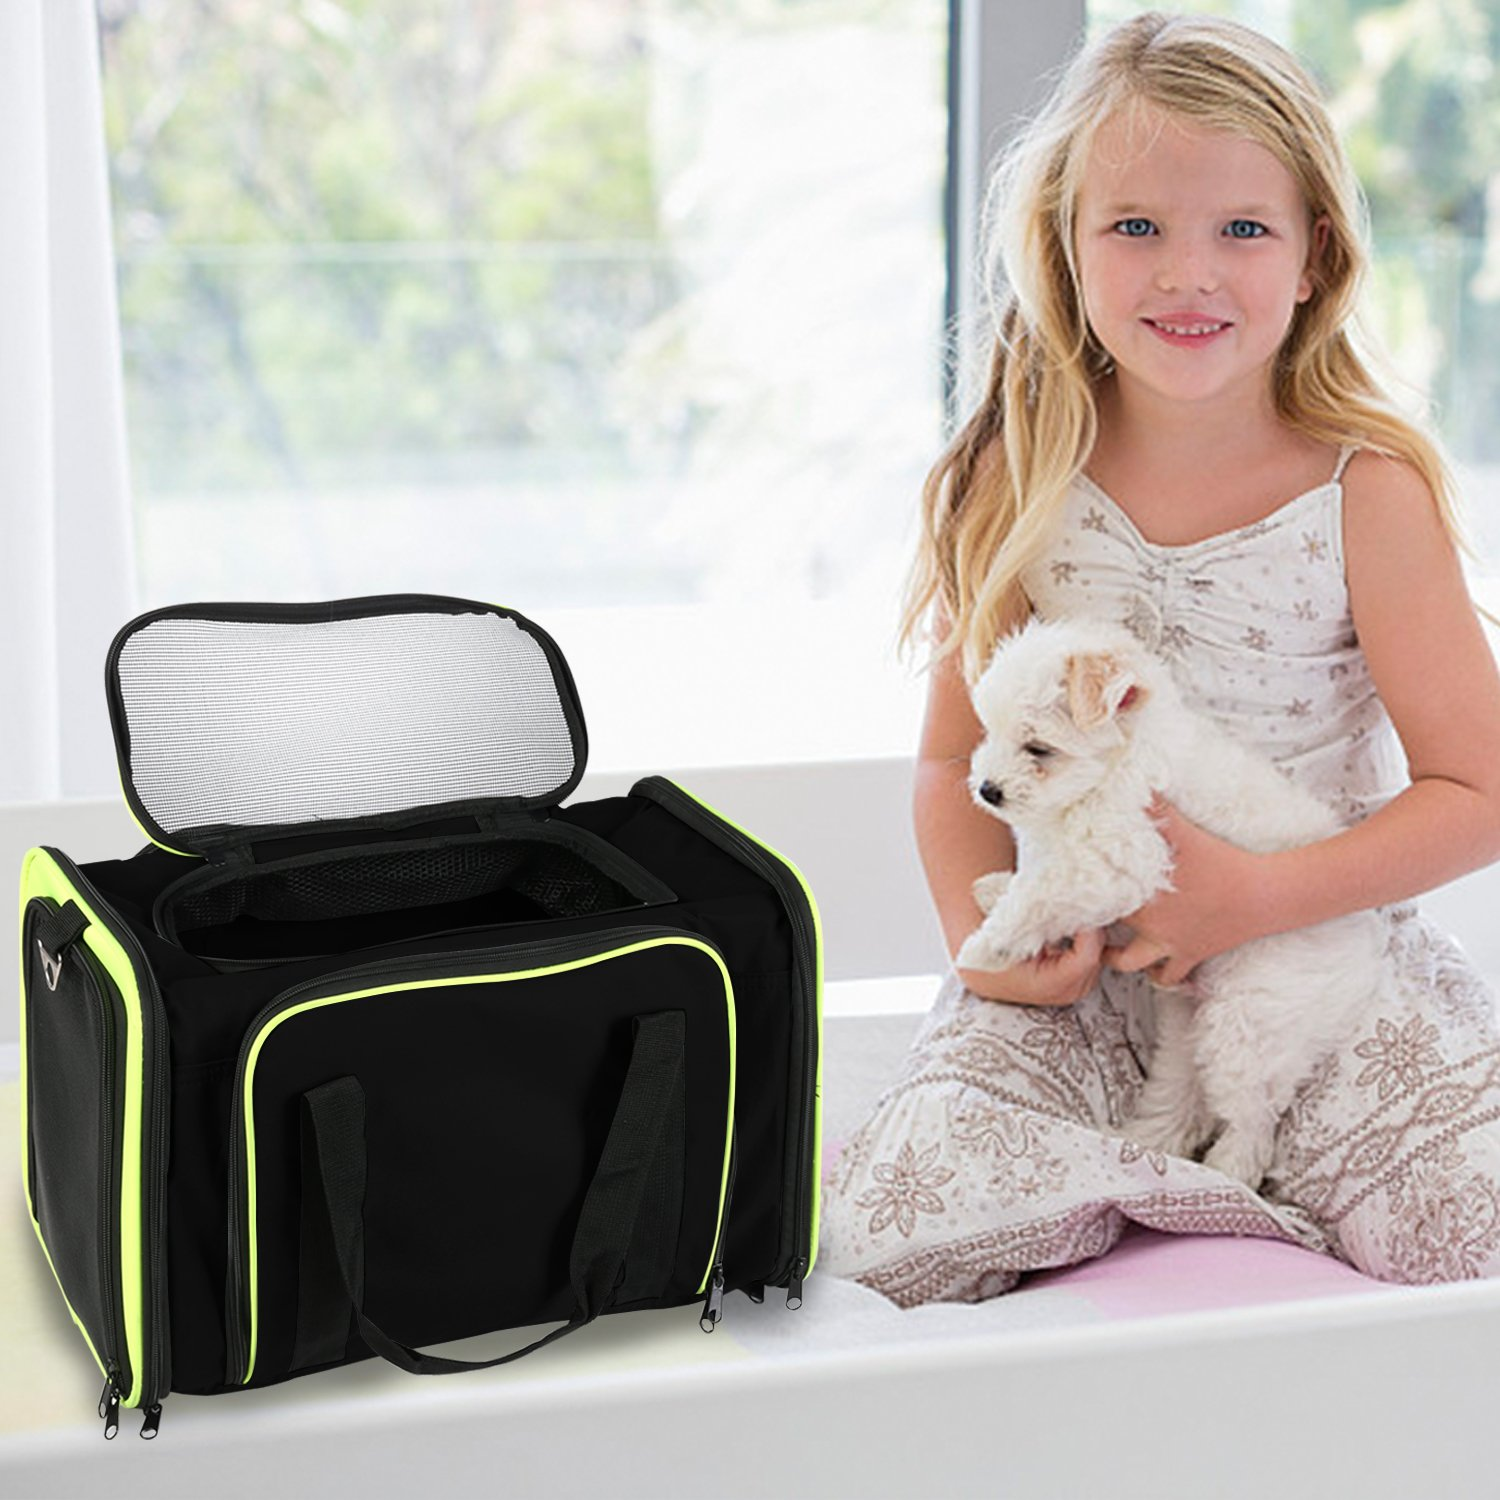 Jespet Expandable Airline Approved Pet Carrier with with Fleece Mat by, Foldable Soft Sided Travel Dog Carrier for Cats Kitten Puppy (16'' L x 9'' W x 9'' H, Black + Neon Green) by Jespet (Image #6)